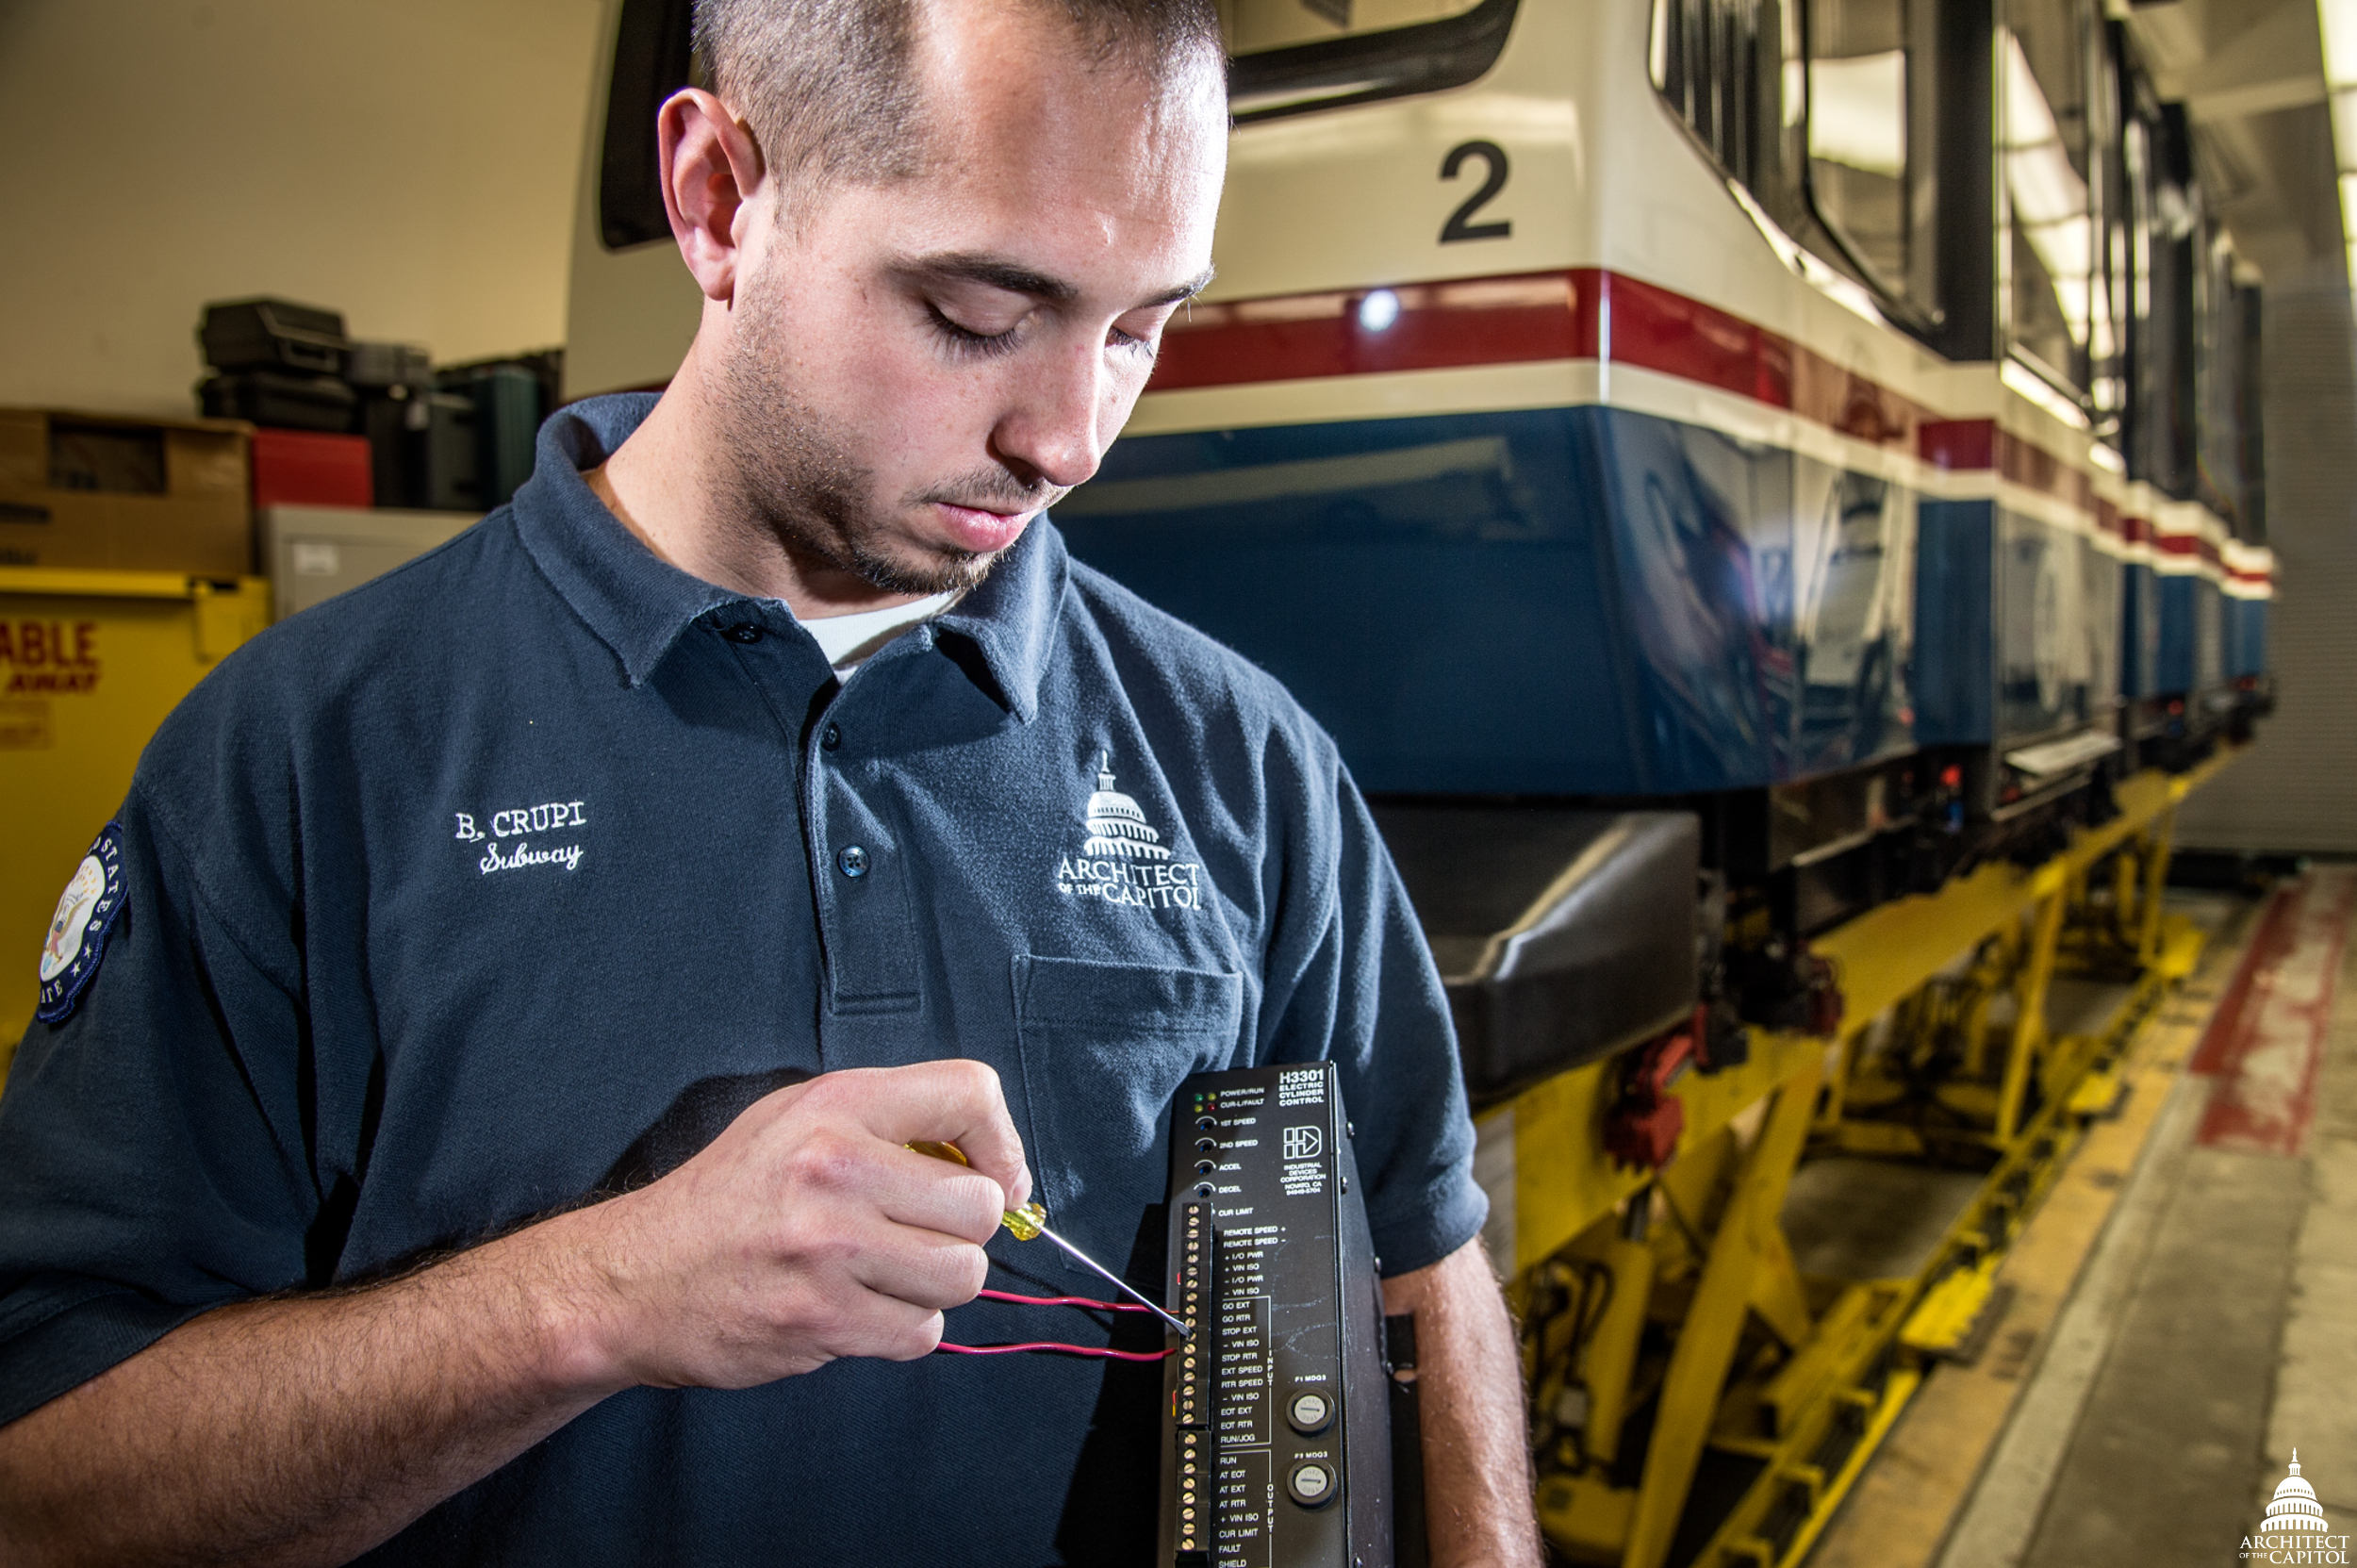 Brian Crupi works on a switch control cabinet which allows operators to move a subway car to the Hart and Dirksen Buildings from one track to the other for maintenance work.